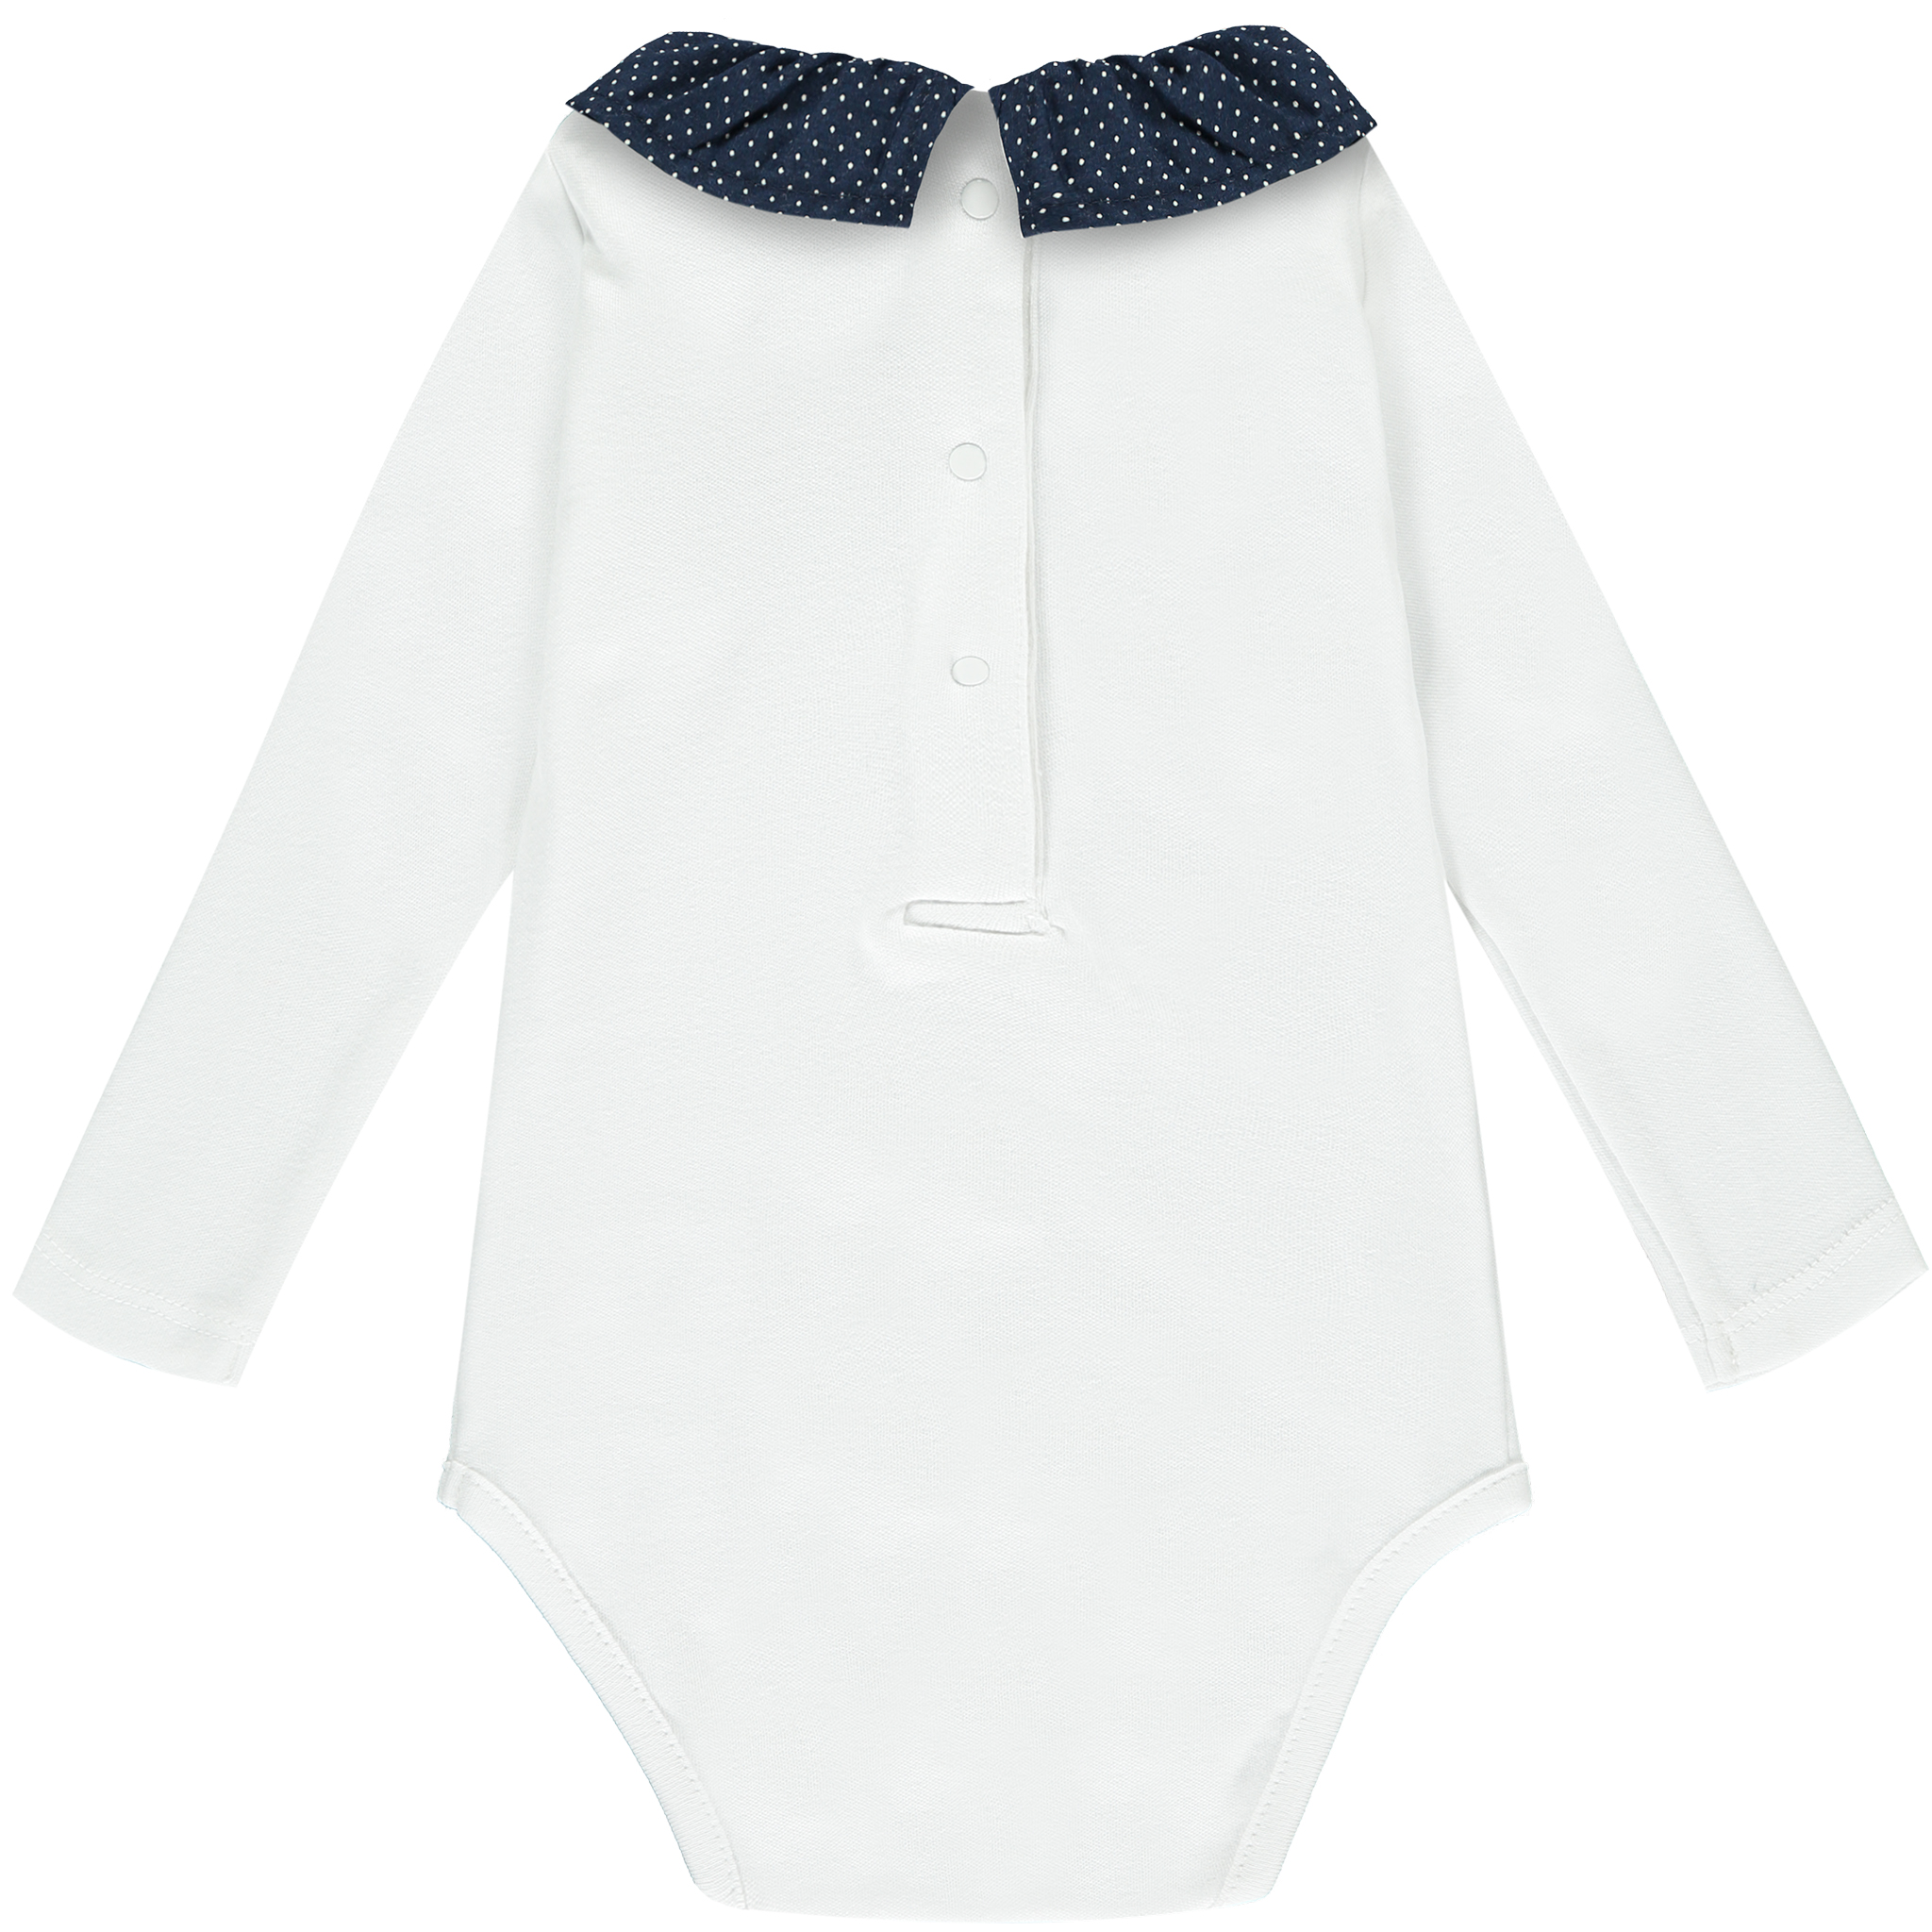 Babygrow with dotted navy frill collar